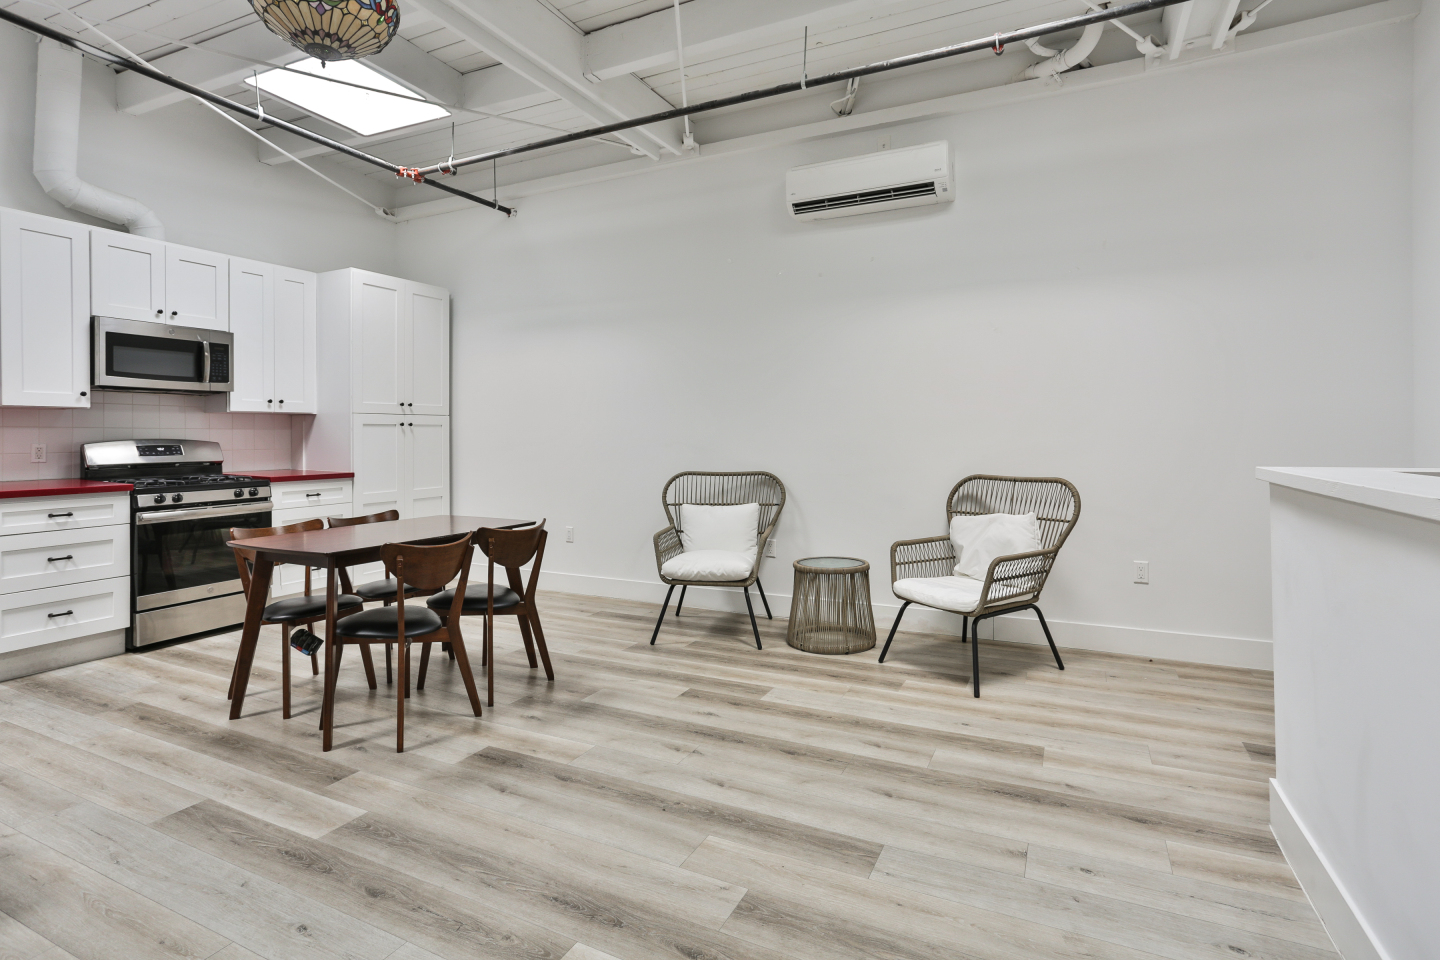 two lounge chairs and small table, large white kitchen